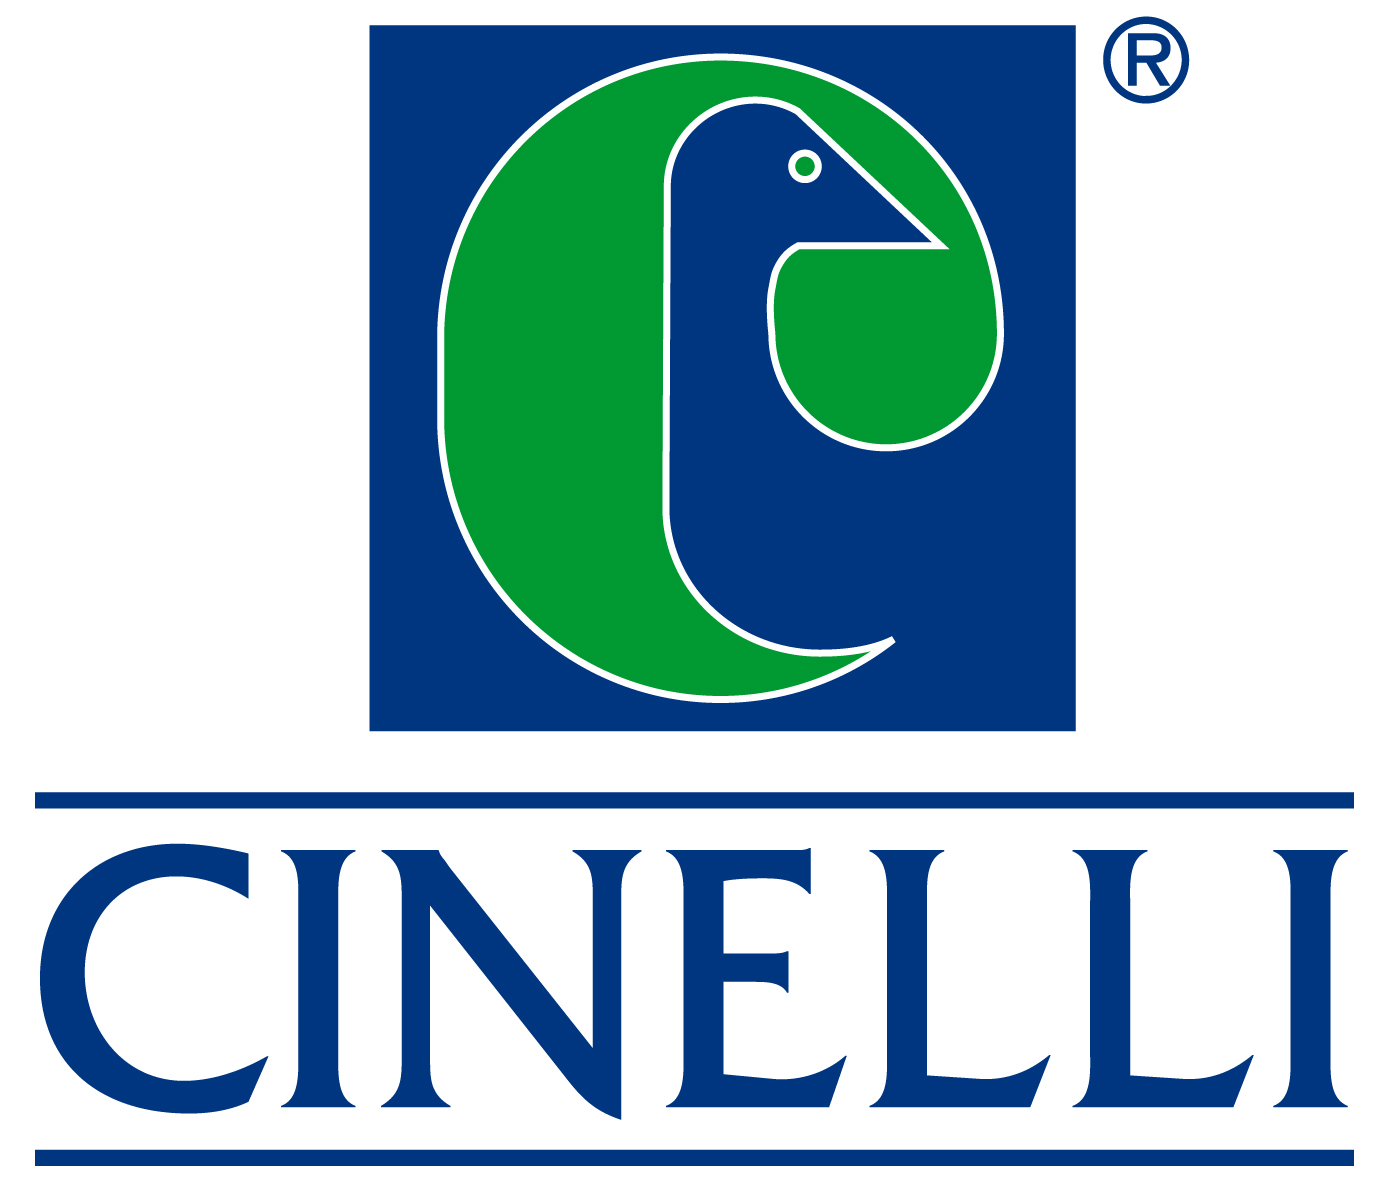 Regione toscana for Cinelli piumini